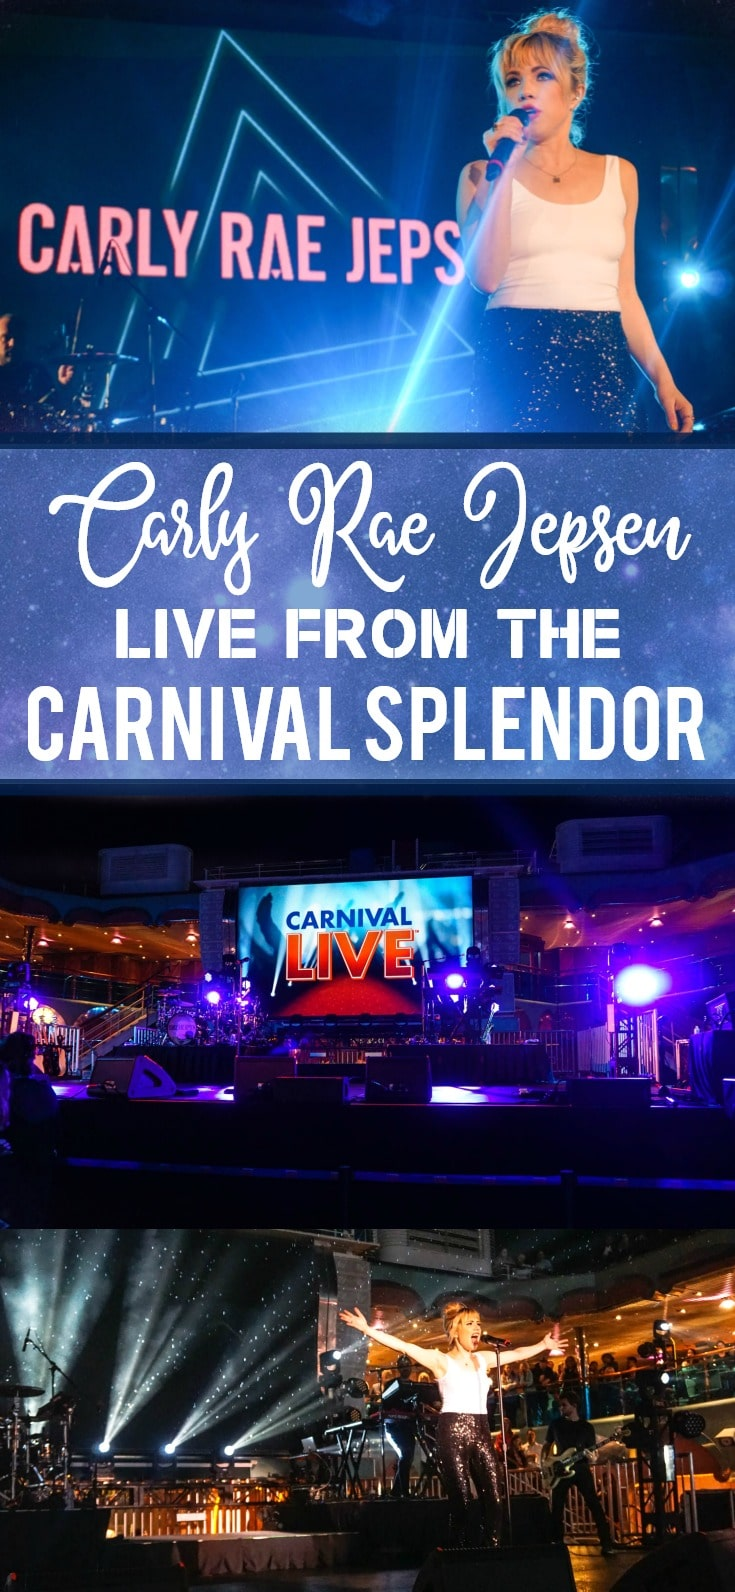 Carly Rae Jepsen Live from the Carnival Splendor Lido Deck